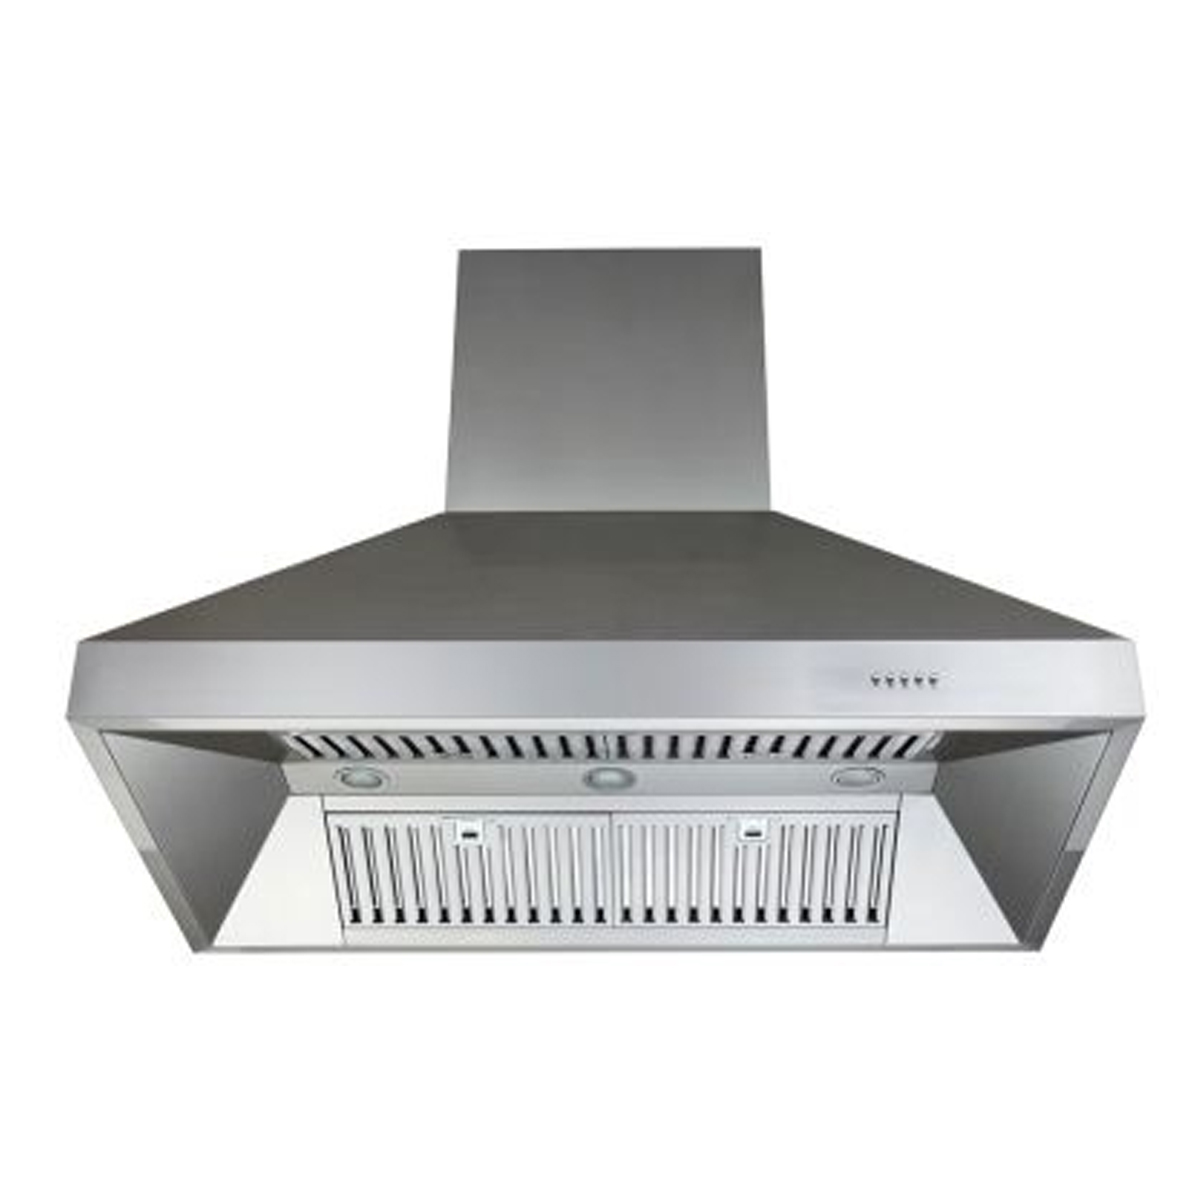 Undermount Rangehood Reviews Schweigen Appliances Online Home Clearance